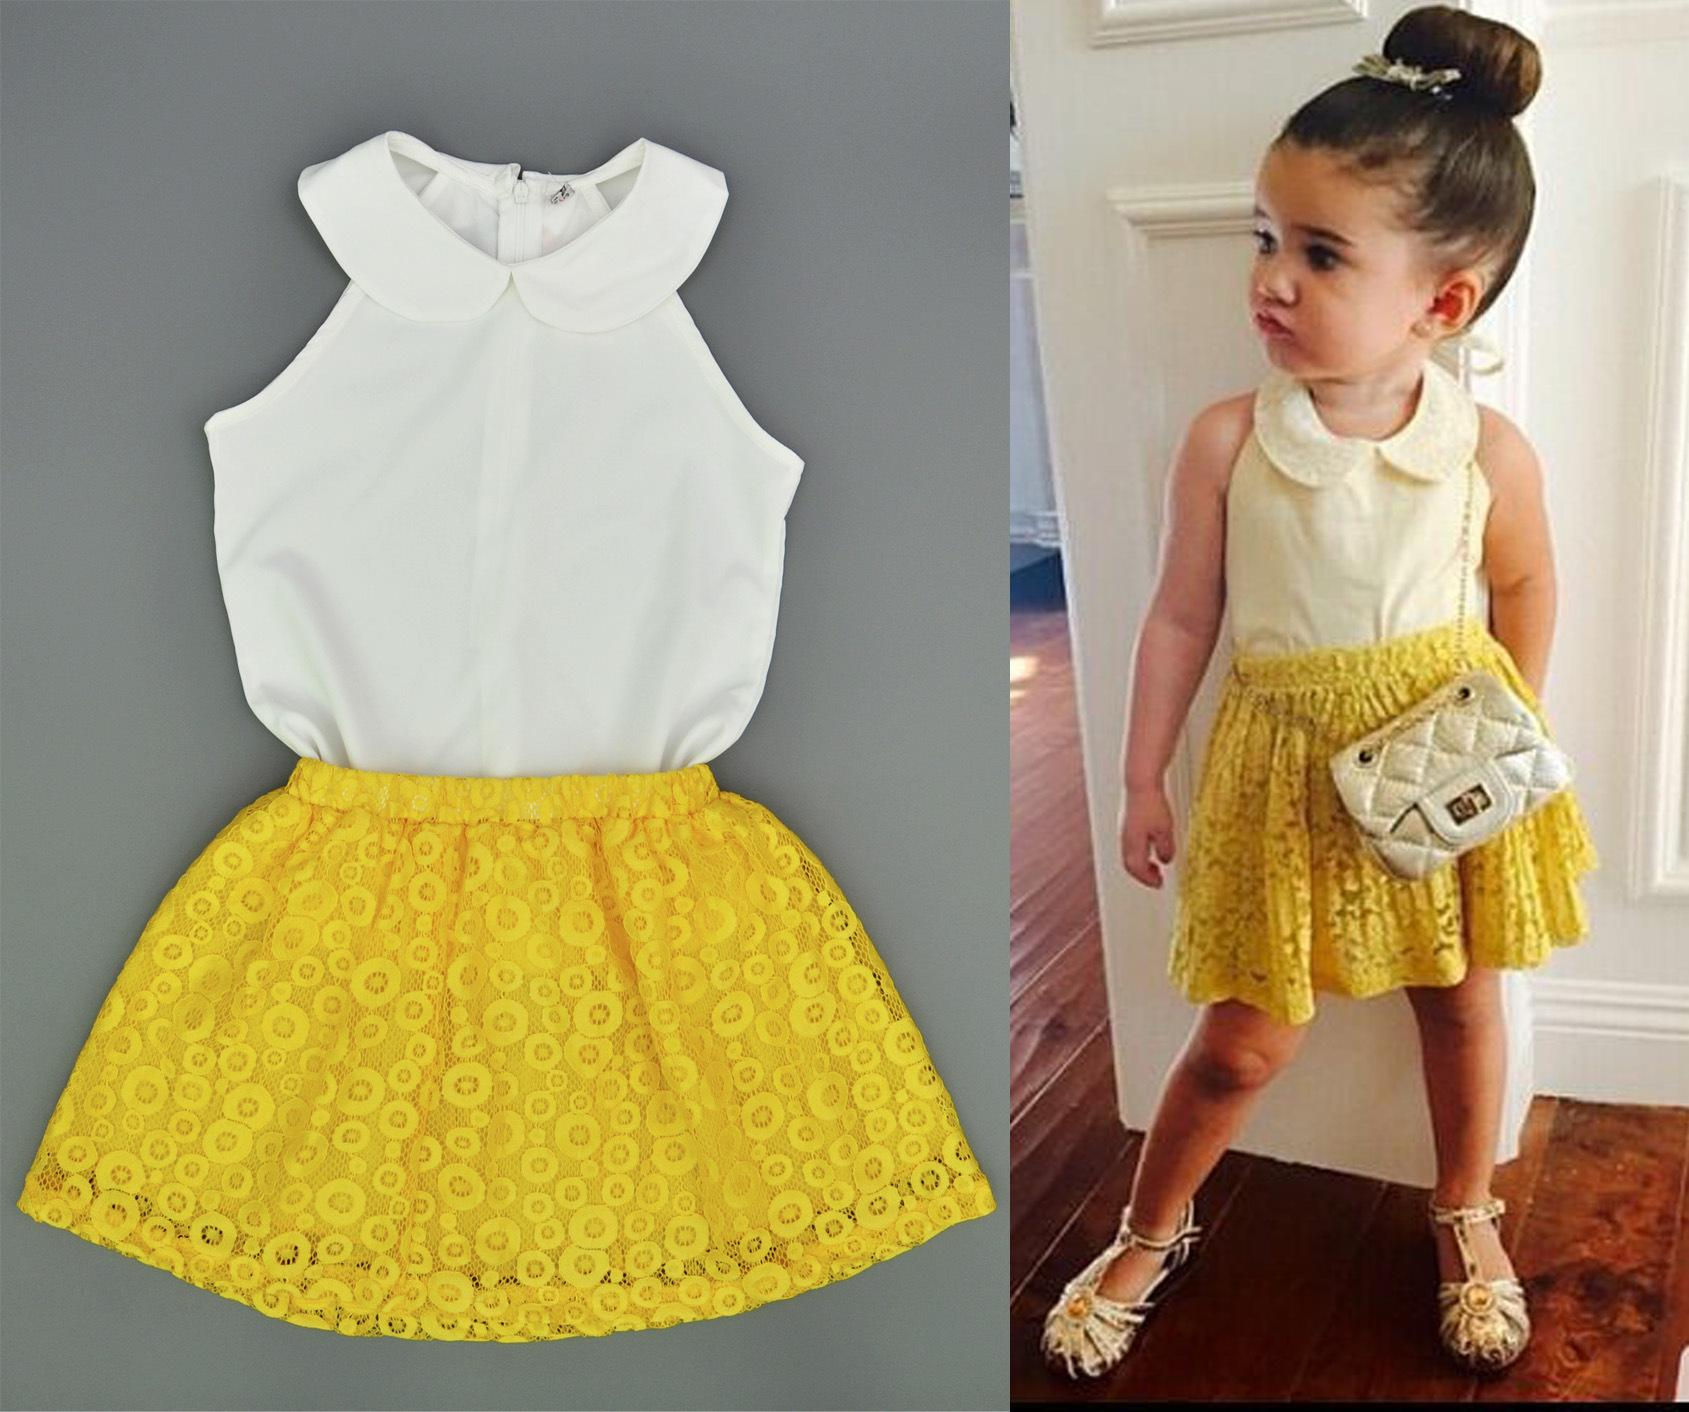 7ae8b11625d1e 2018 Summer Baby Girl Clothes Sets Sleeveless White Chiffon Shirts+Yellow  Lace Skirts 2pcs Kids Clothing Set Boutique Outfits